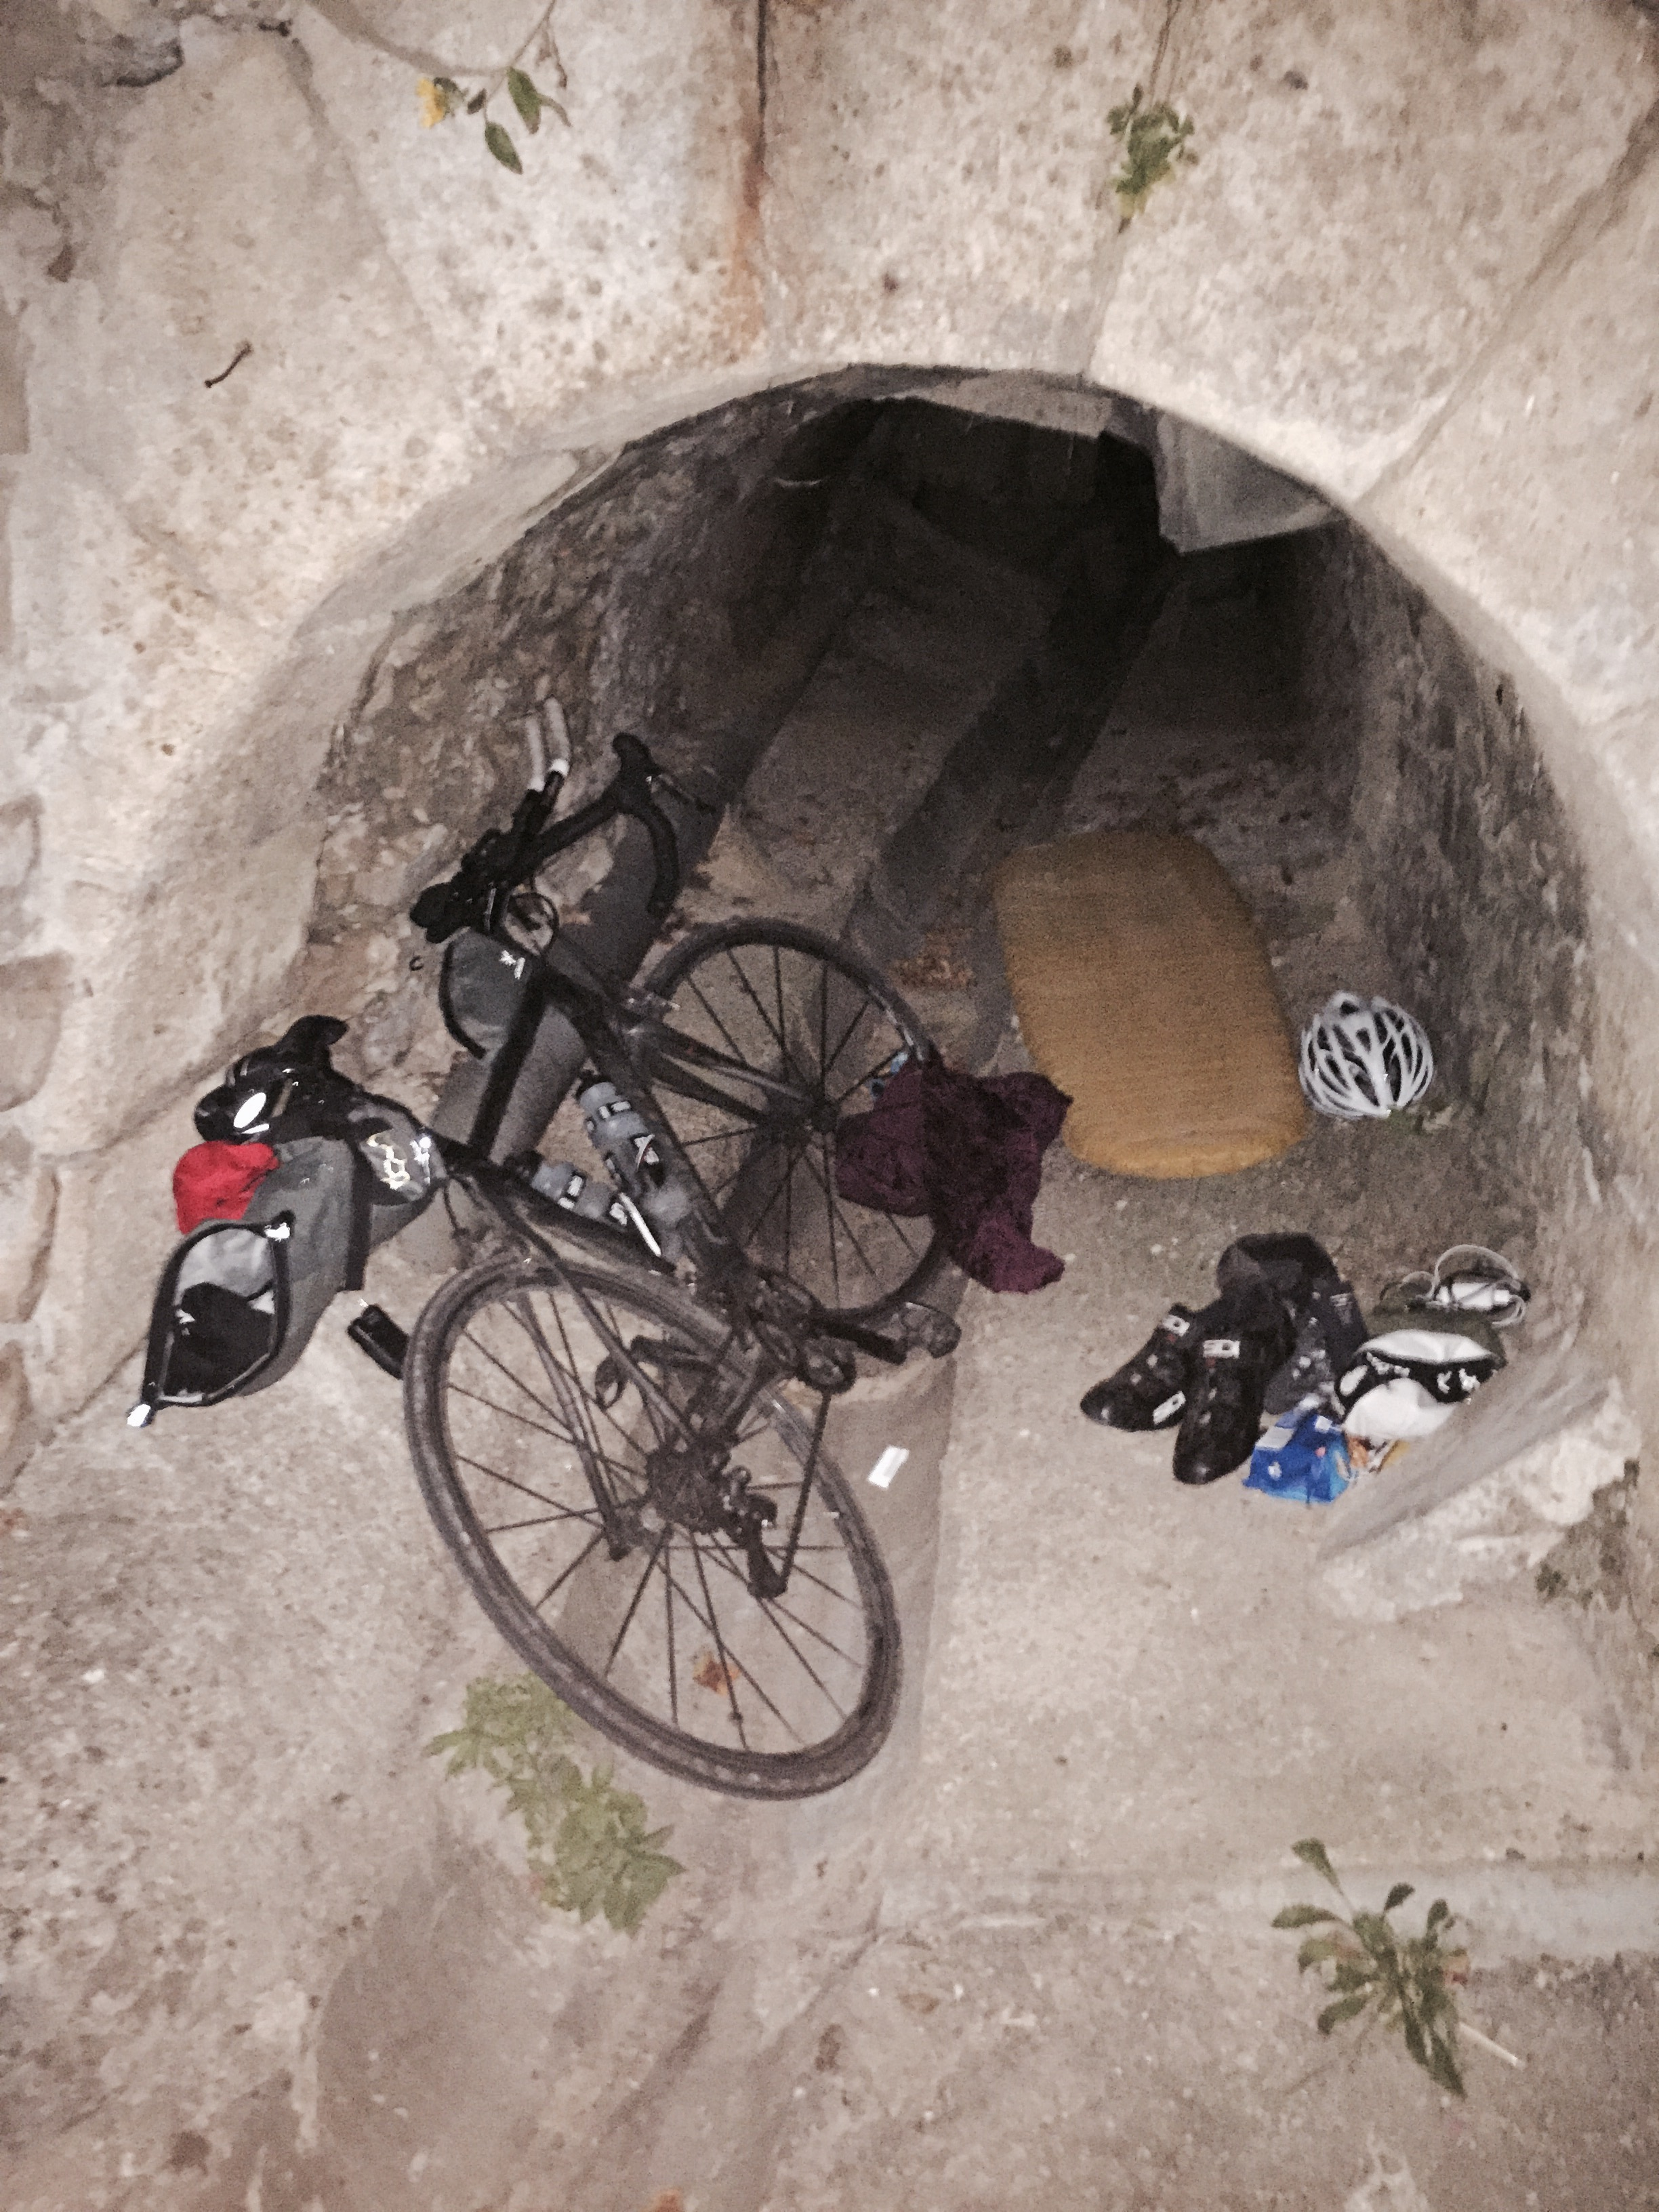 Camping in a storm drain